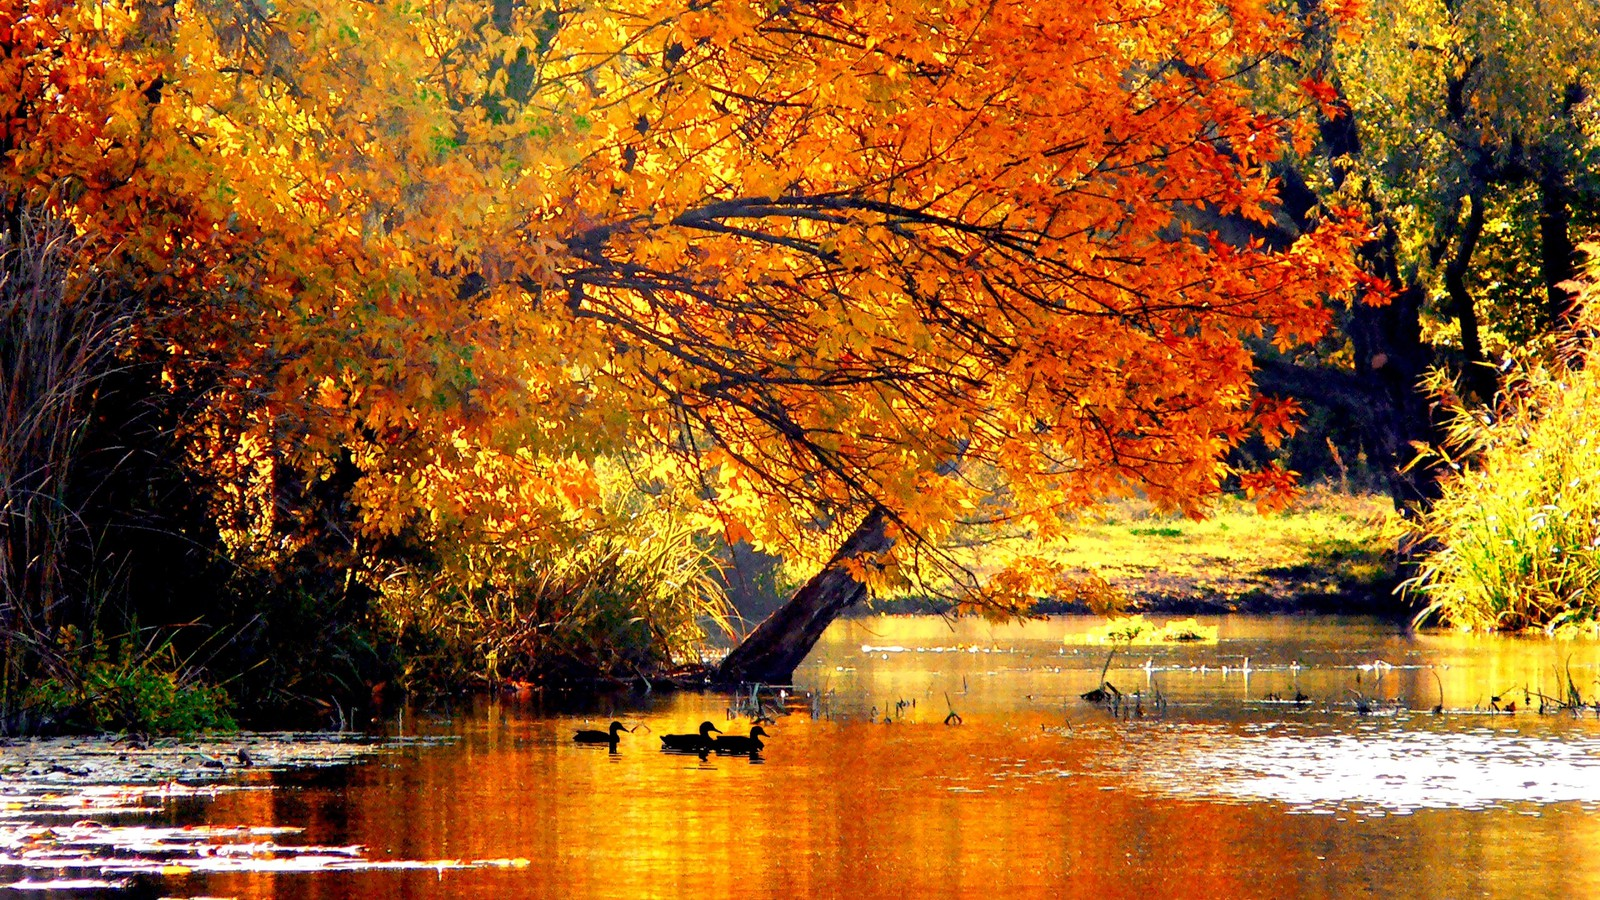 Nature Wall Murals Autumn Tale Wallpaper Allwallpaper In 14505 Pc En